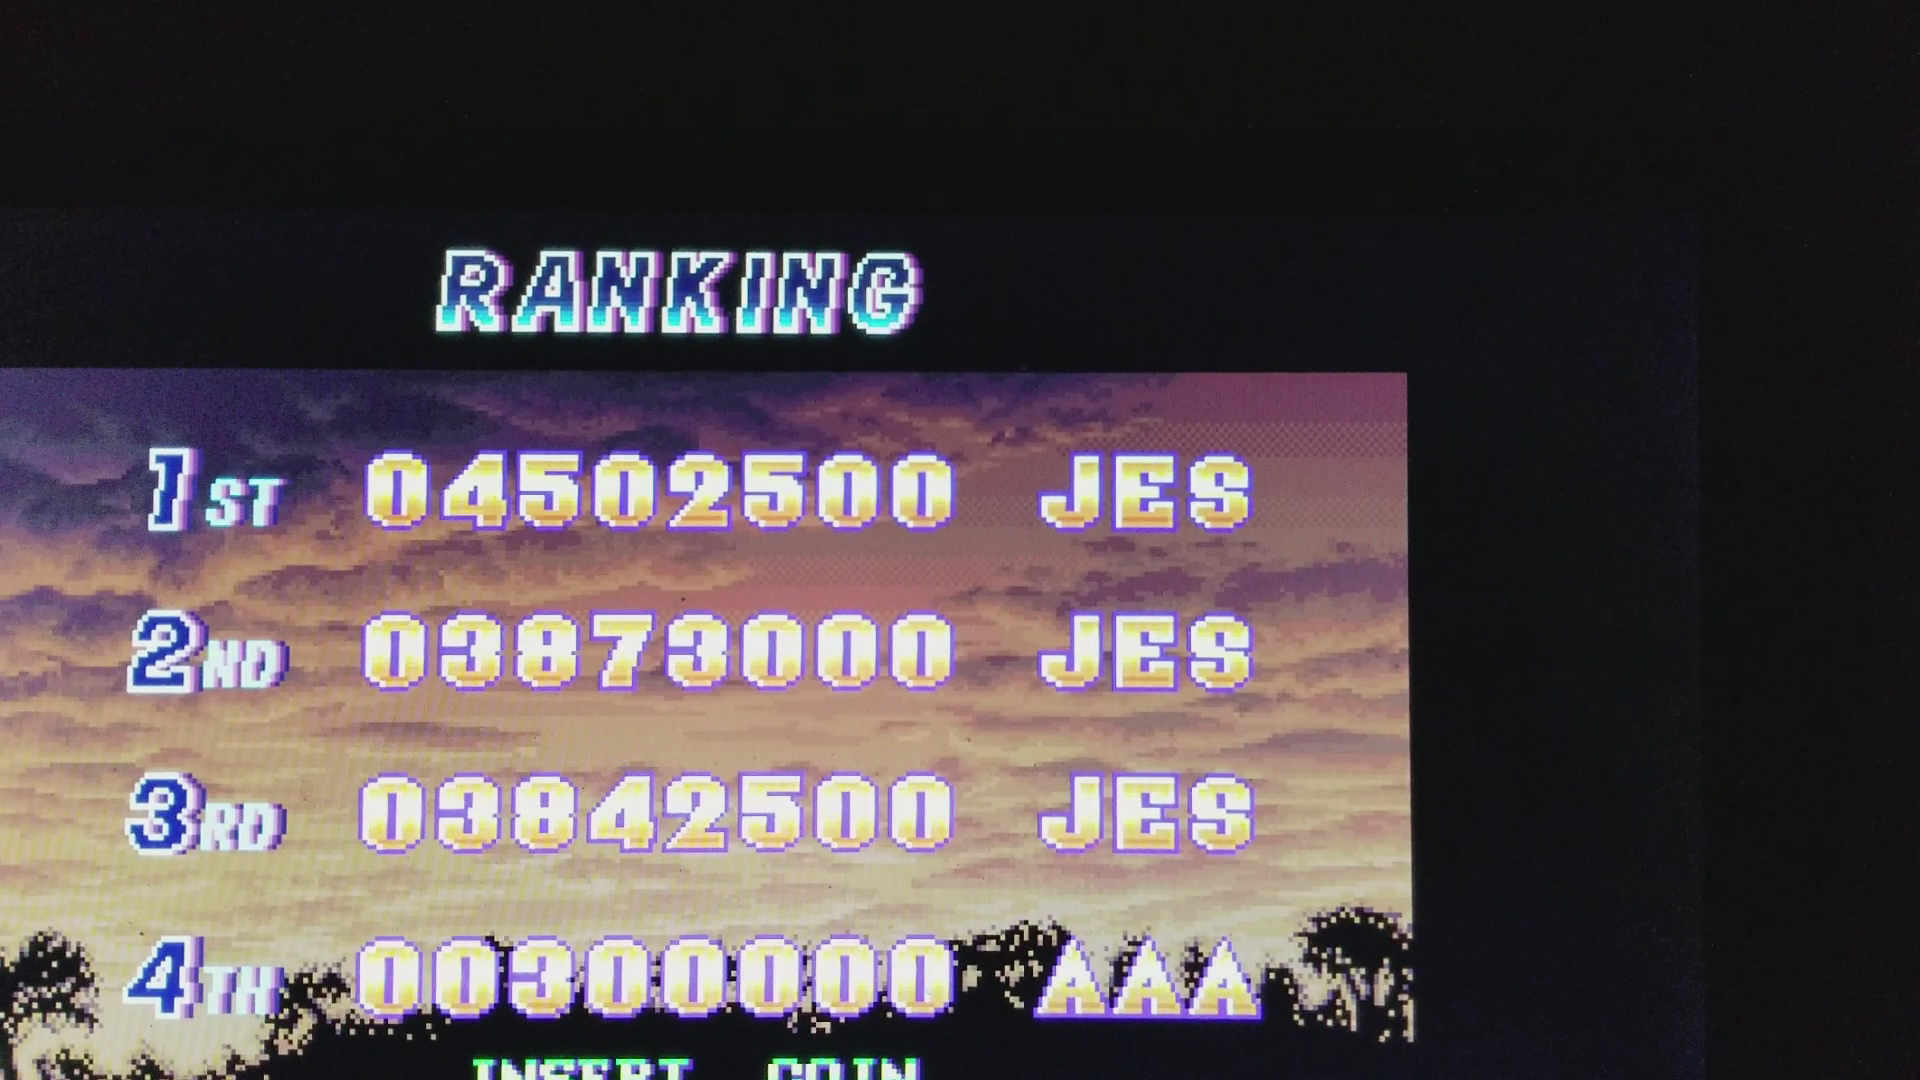 JES: Shock Troopers [shocktroa] (Arcade Emulated / M.A.M.E.) 4,502,500 points on 2017-08-26 04:21:00